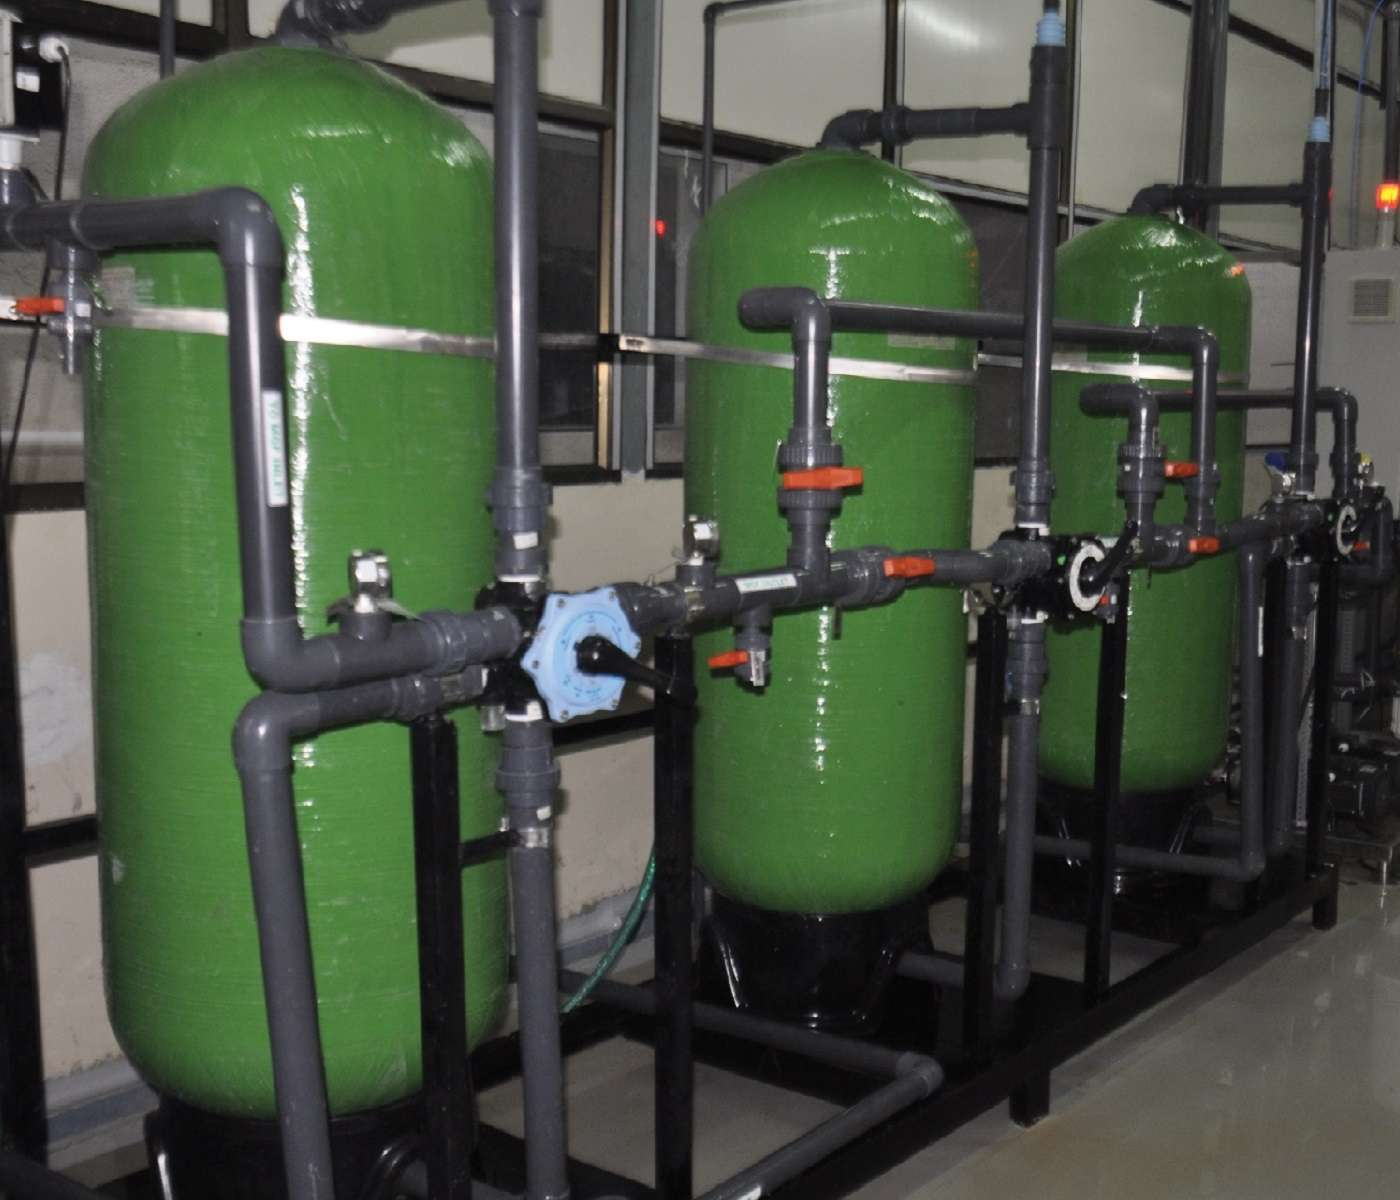 Potable water generation systems